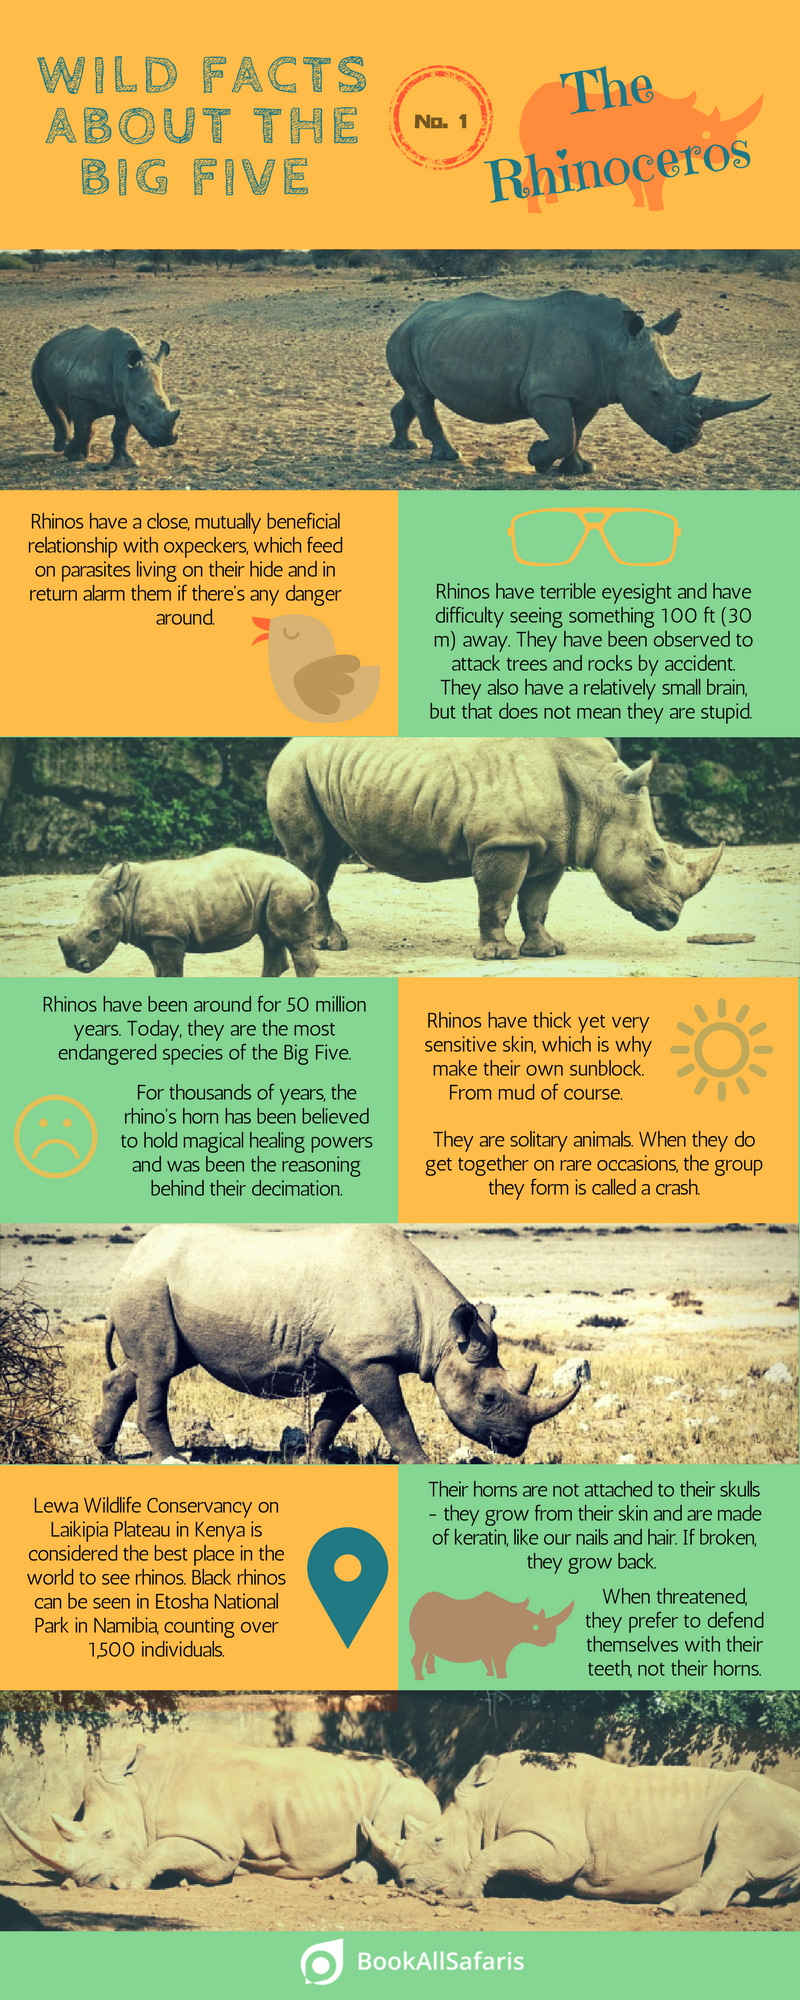 Wild Facts About the Big Five: No  1 – the Rhinoceros